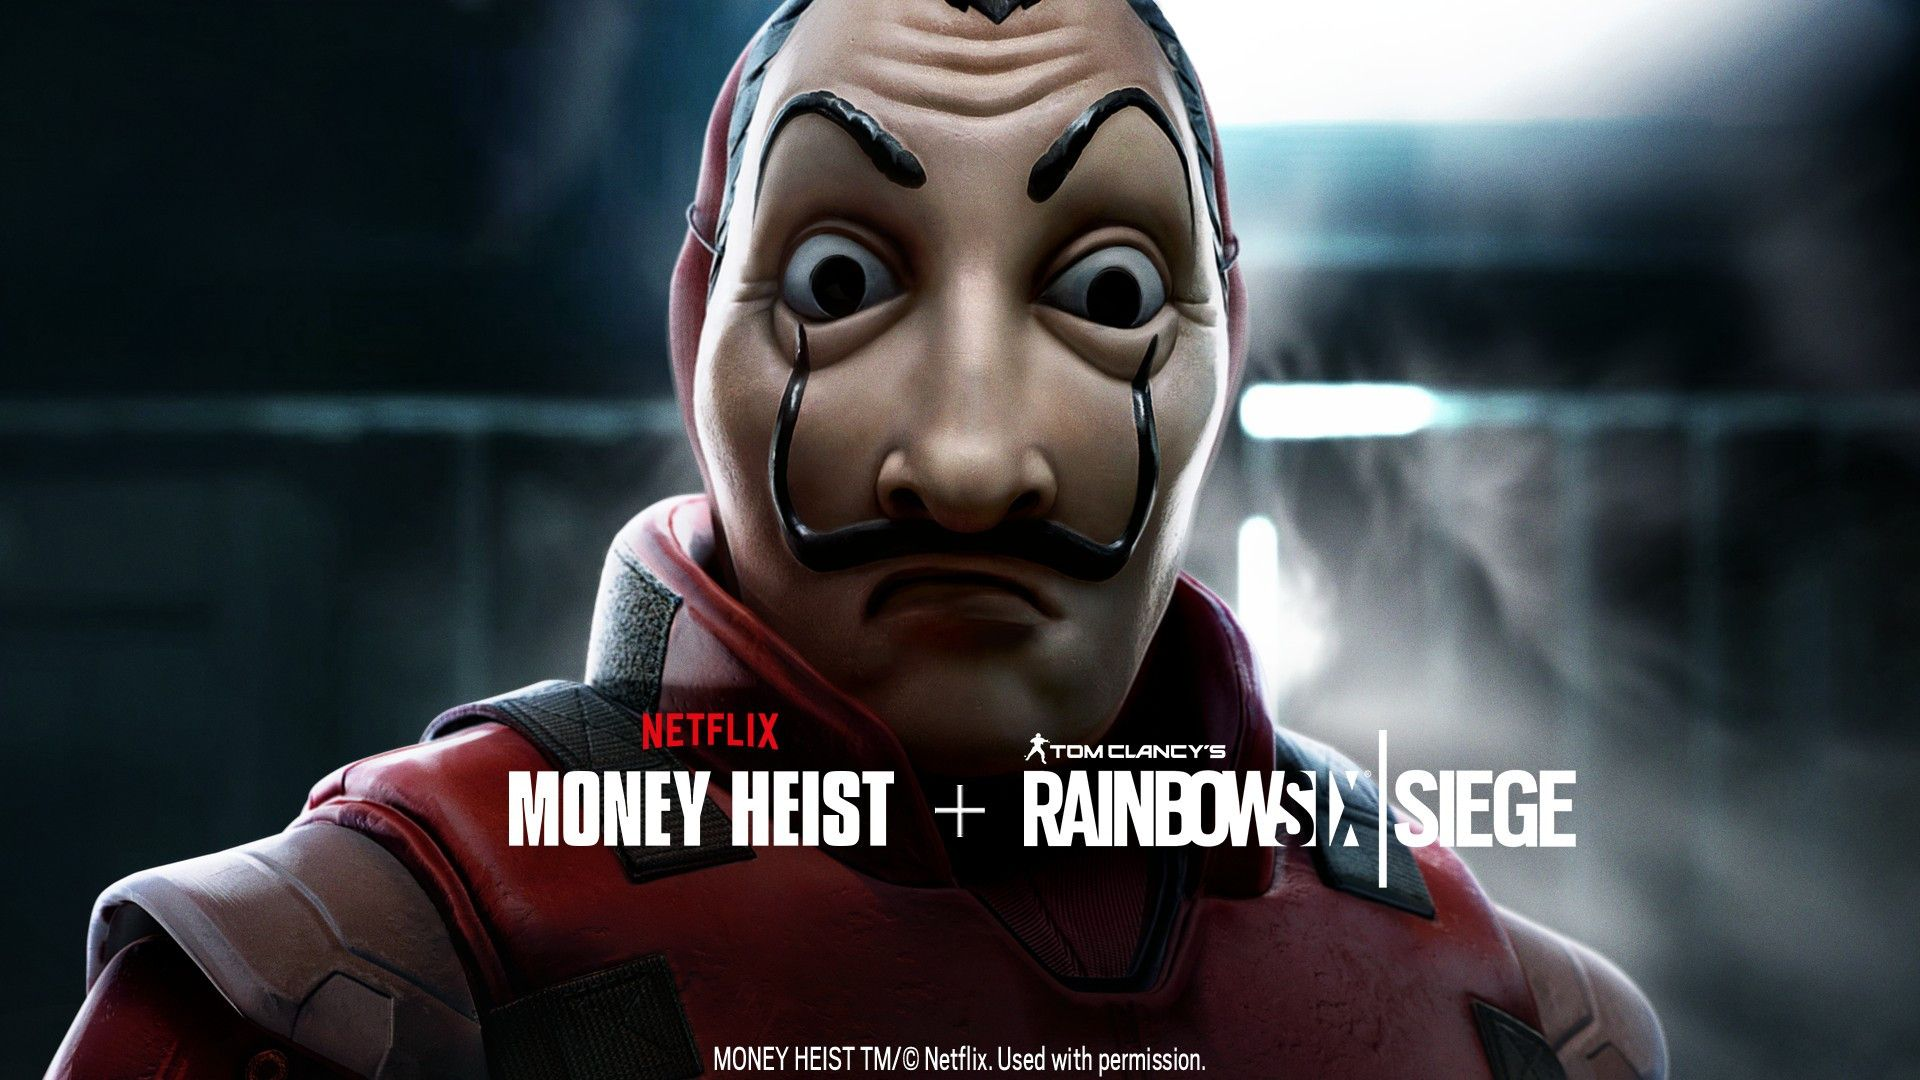 Rainbow Six Siege And Money Heist Team Up In Free Weekend Event